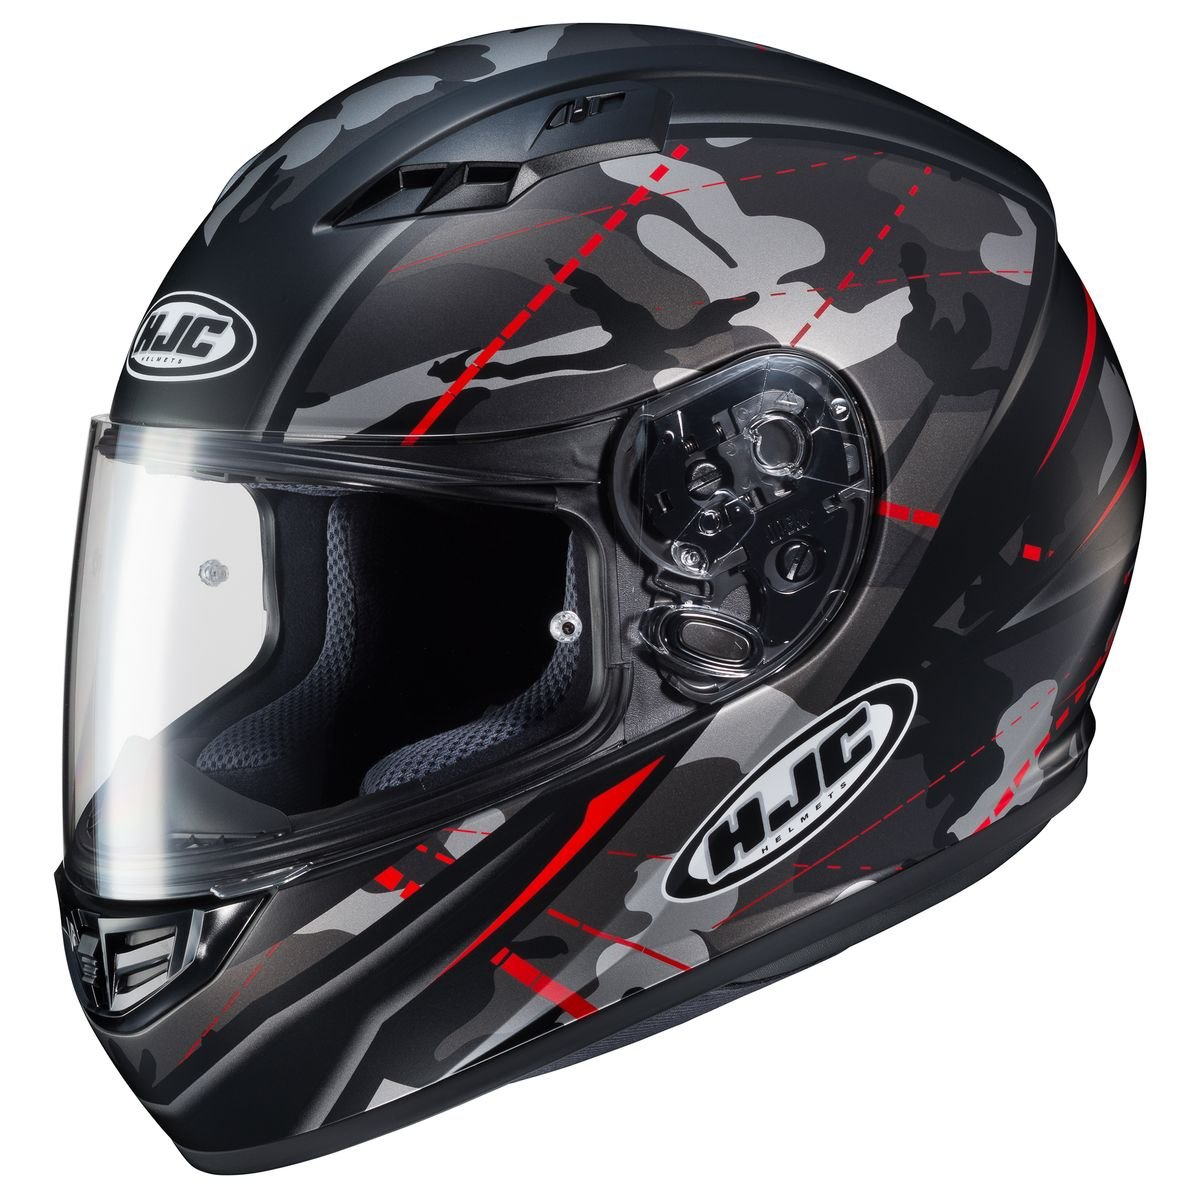 HJC Helmets CS-R3 Helmet - Songtan (MEDIUM) (BLACK/RED) by HJC Helmets